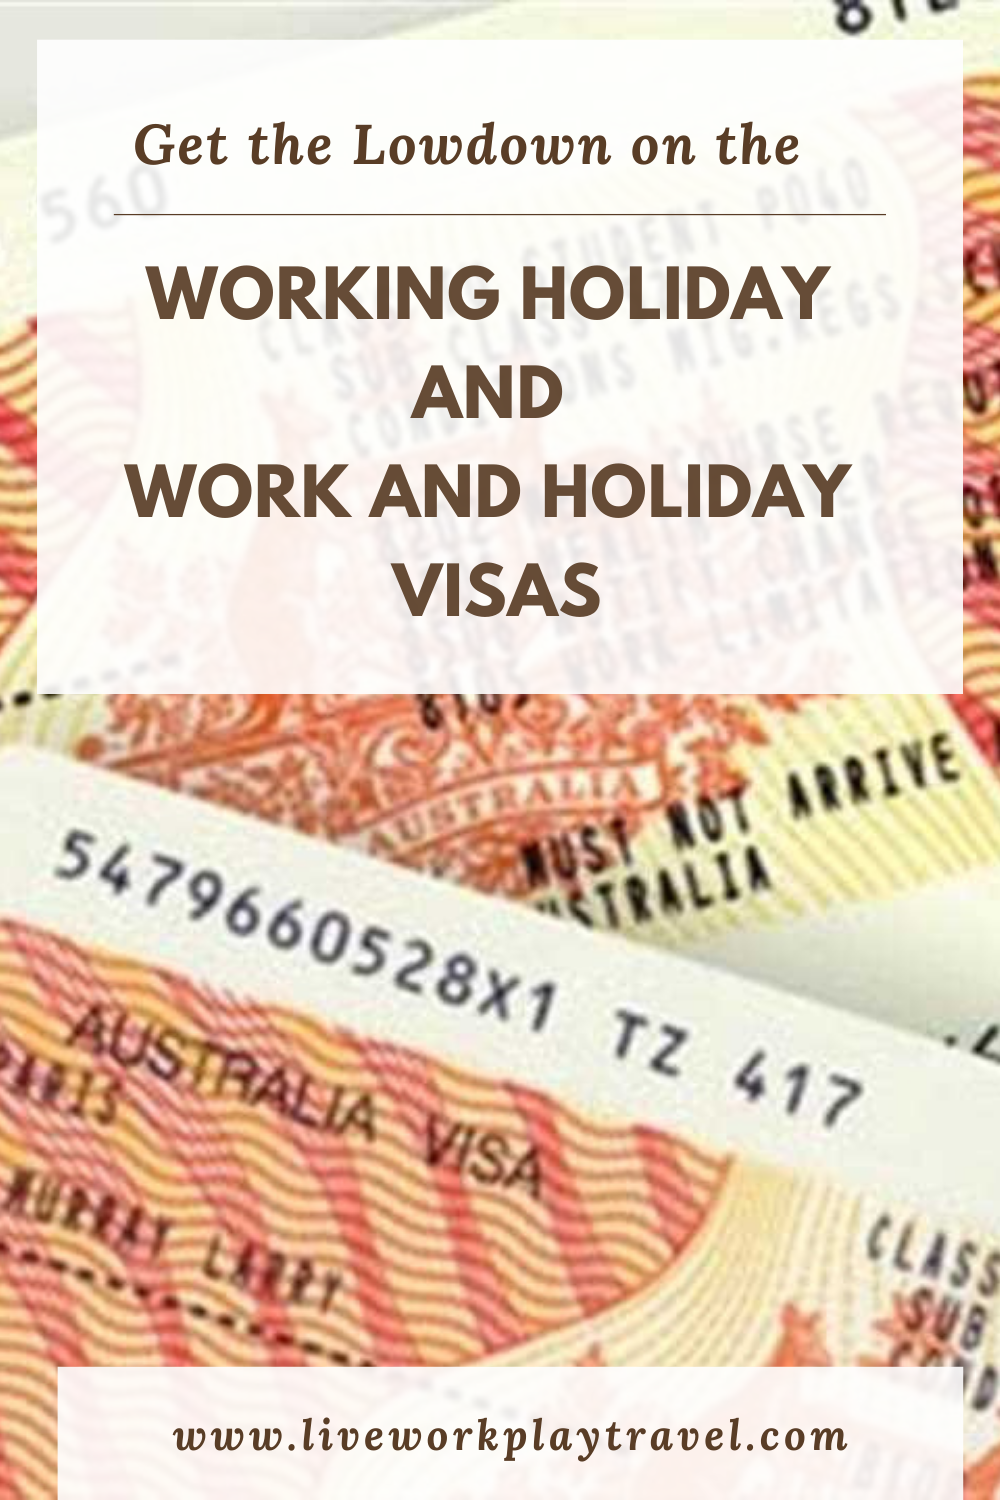 Working Holiday and Work and Holiday Visas